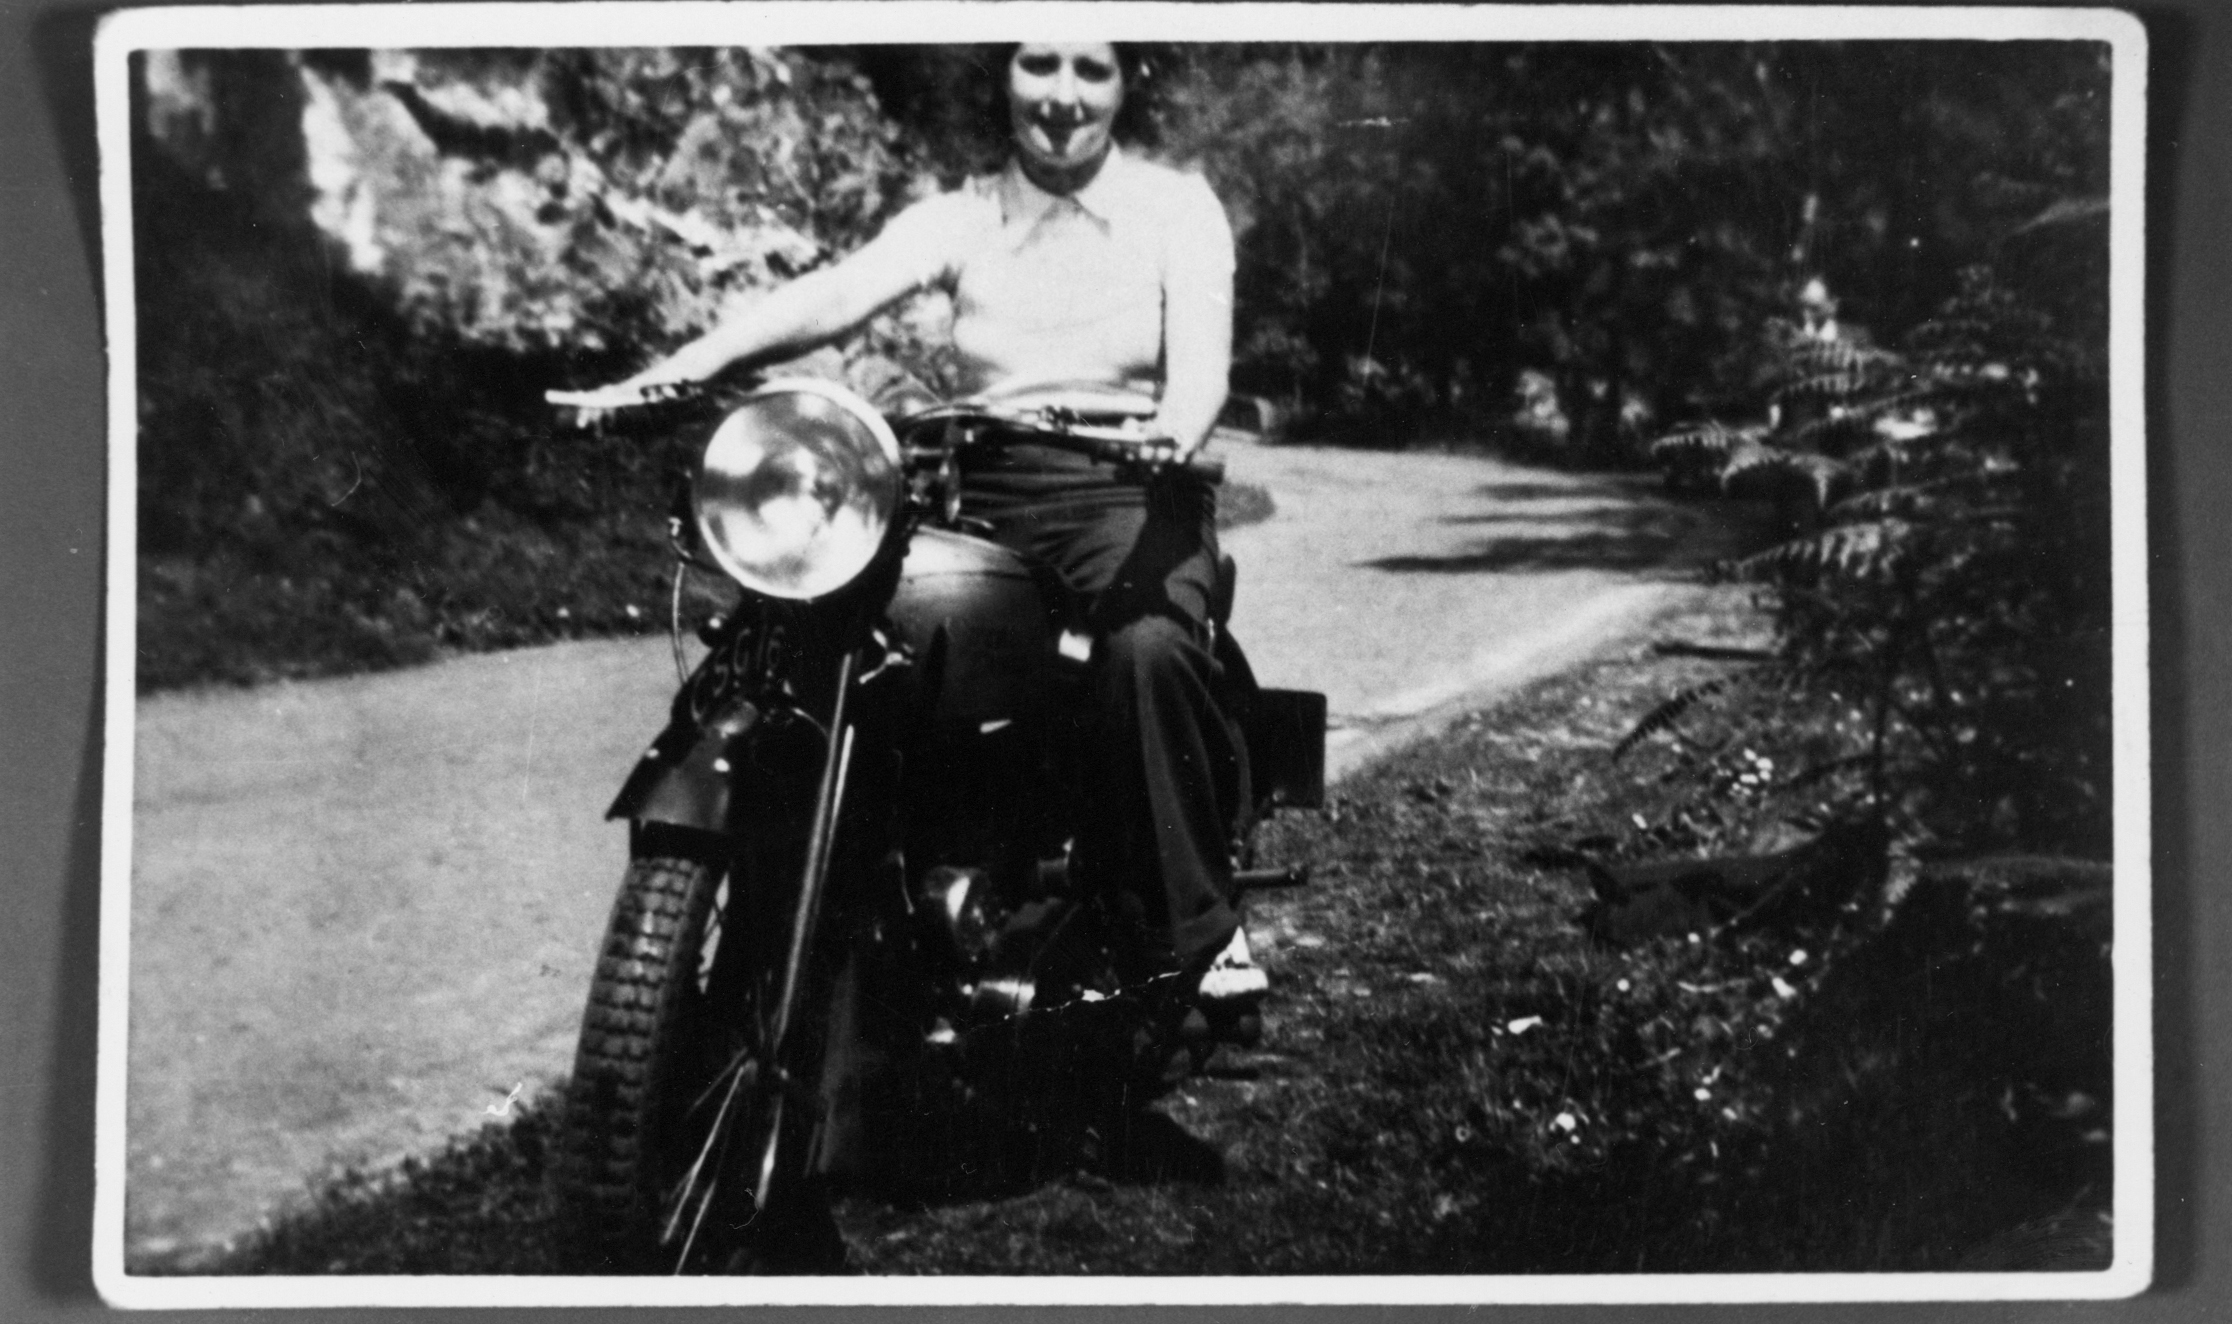 Woman On Royal Enfield Motorbike 1938